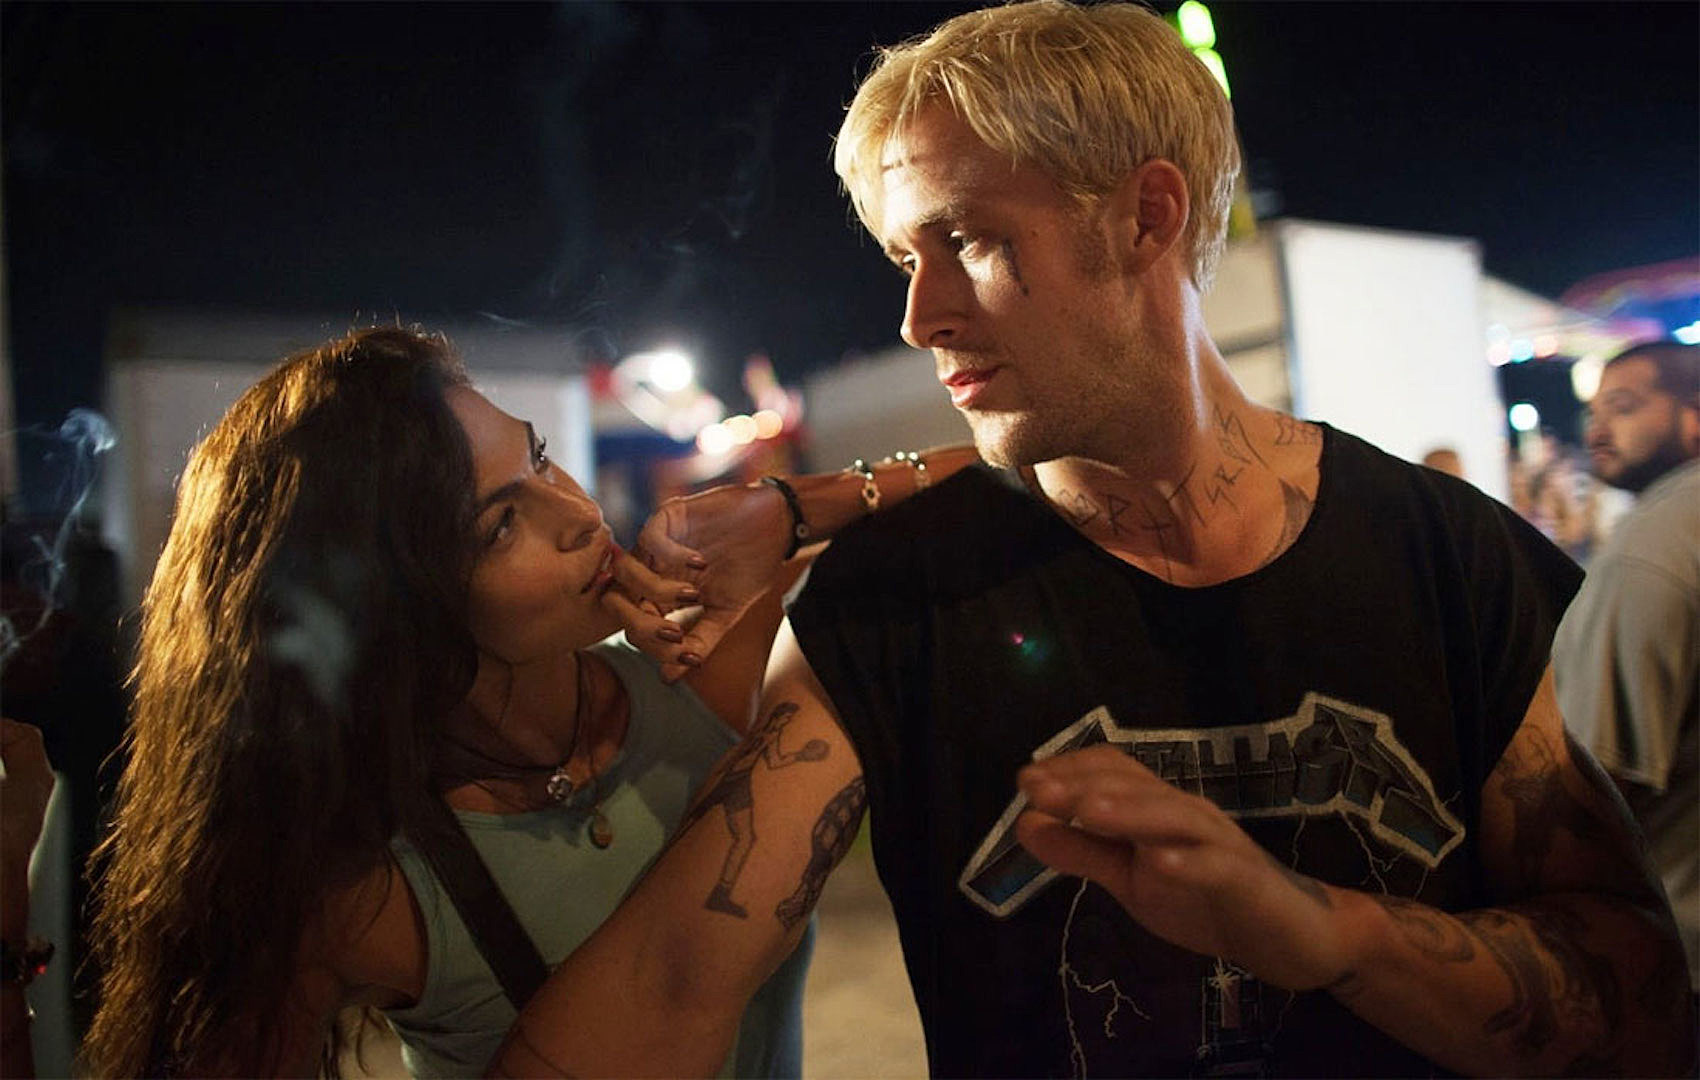 The Place Beyond the Pines Derek Cianfrance, 2012